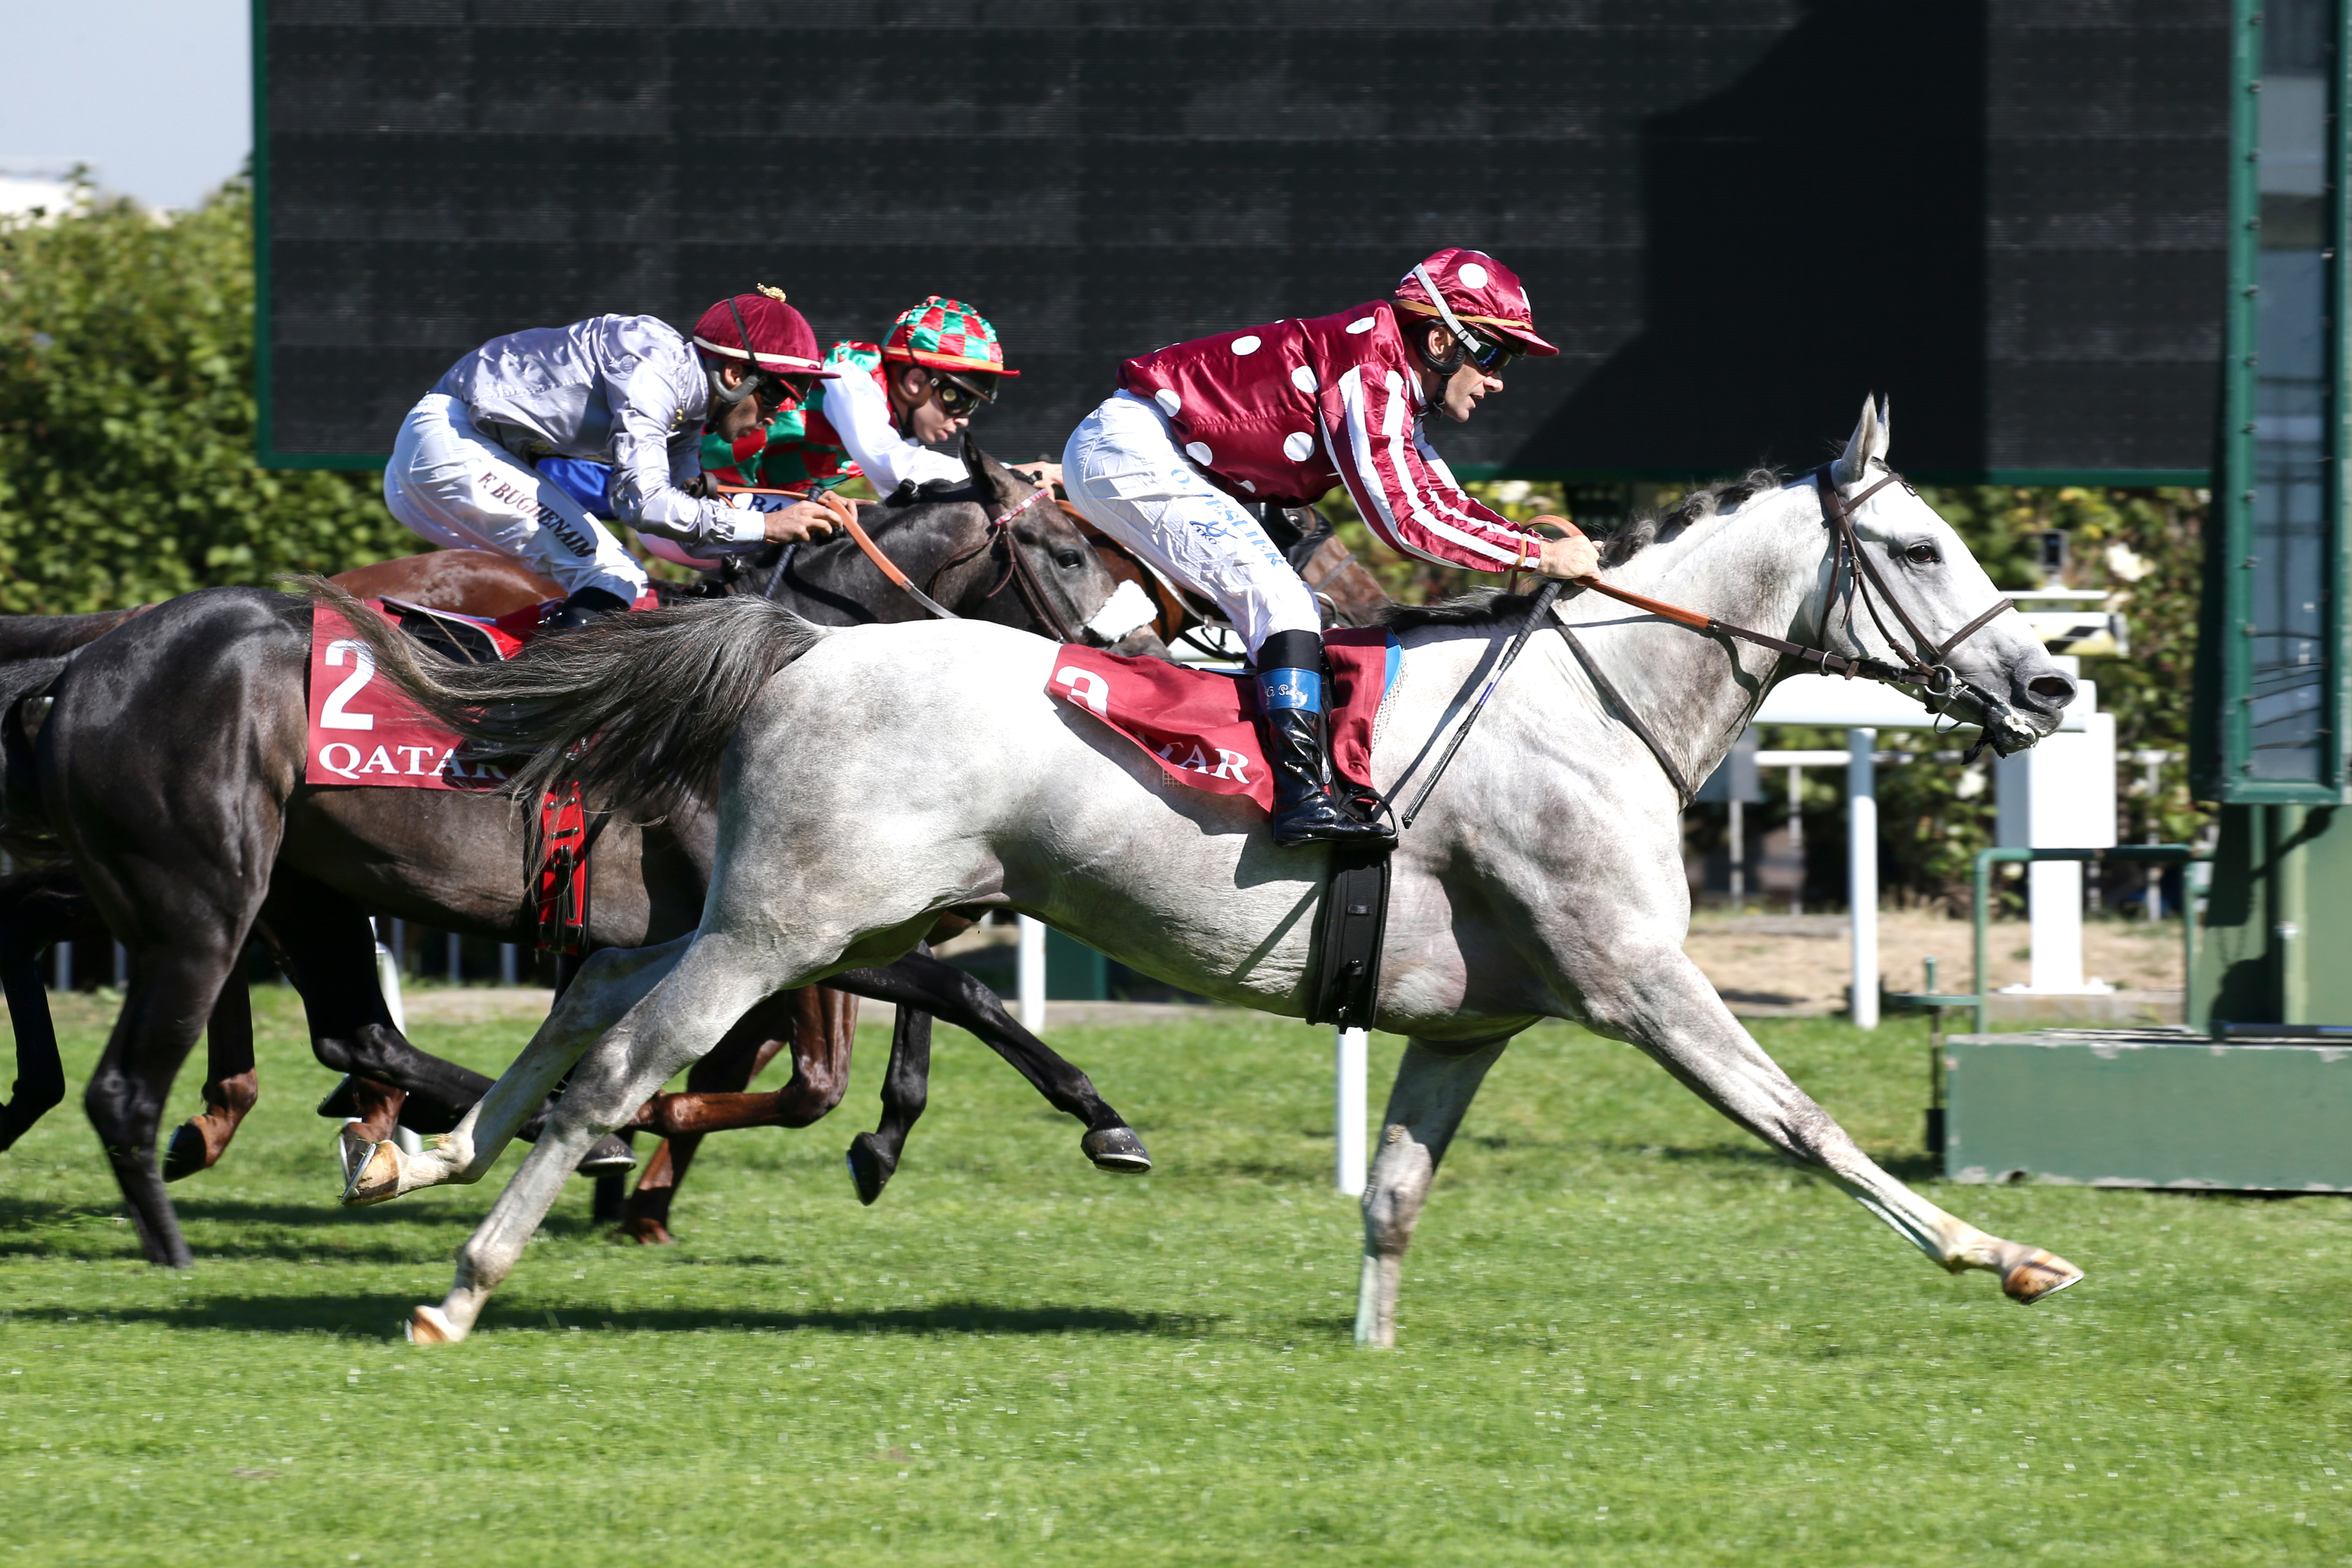 QATAR ARABIAN TROPHY DES POULAINS - MARID UNDERPINS A GREAT DAY FOR GRAND COURGEON